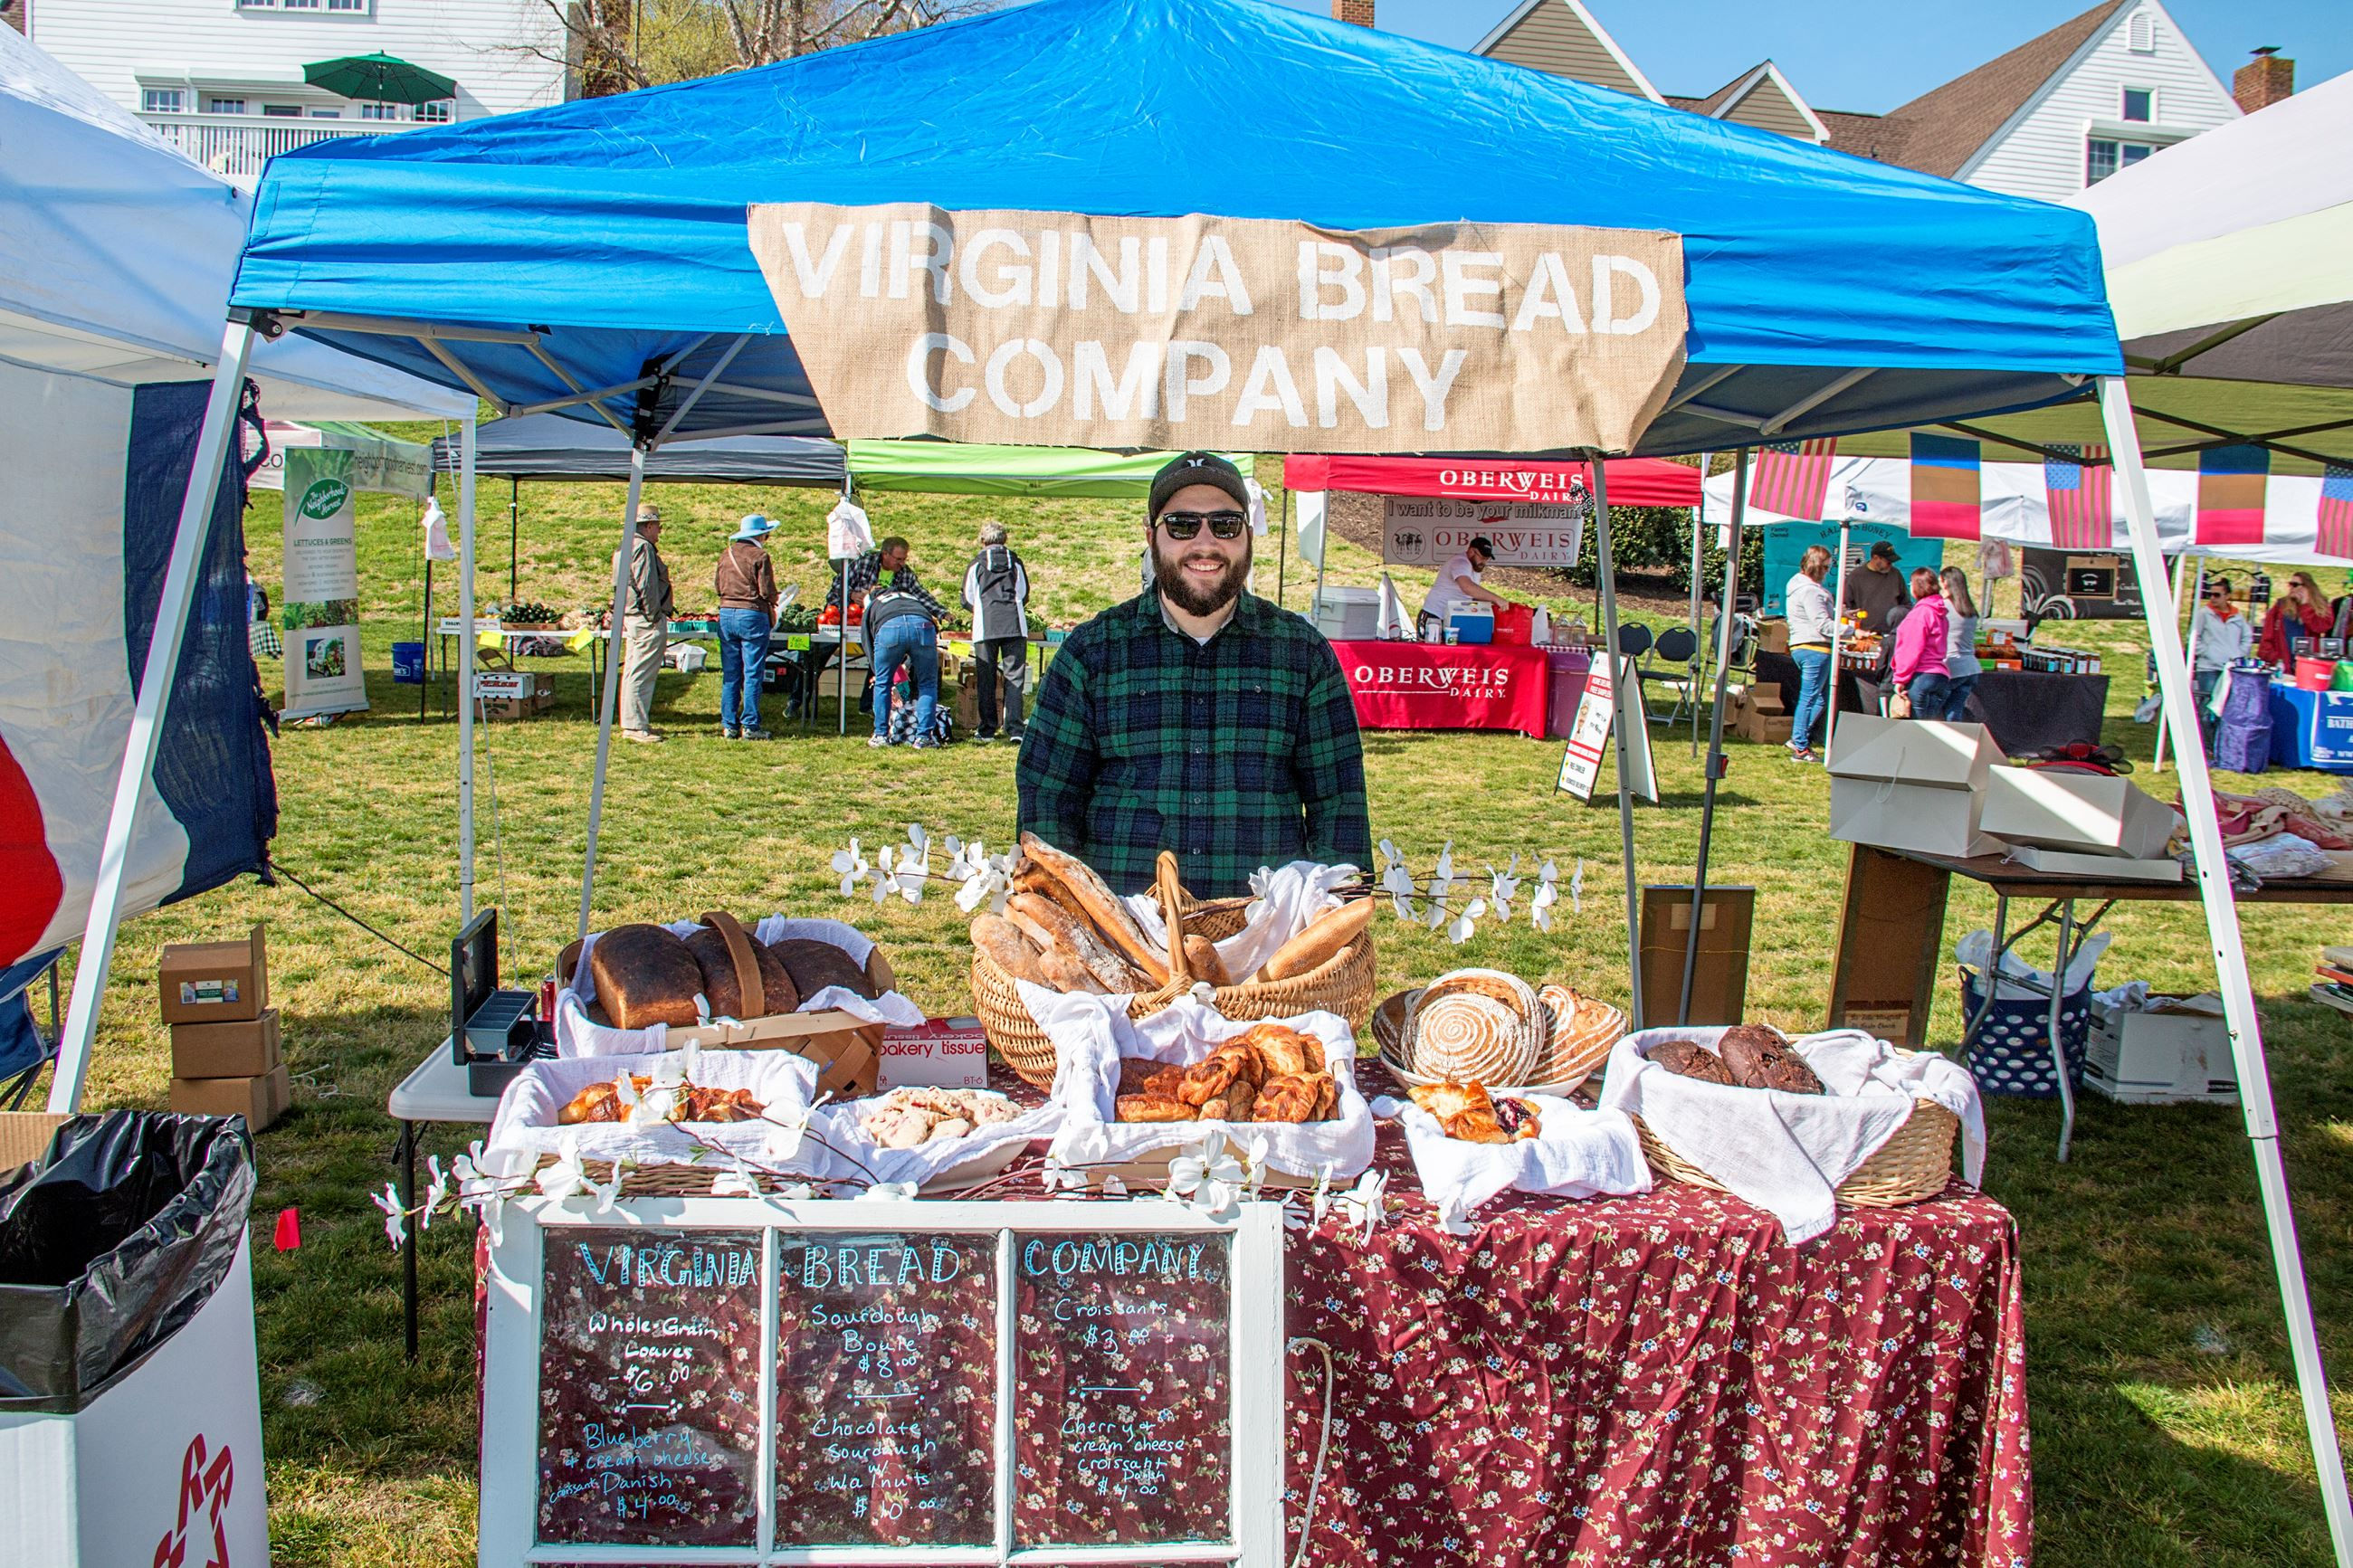 Virginia Bread Company Market Days Vendor